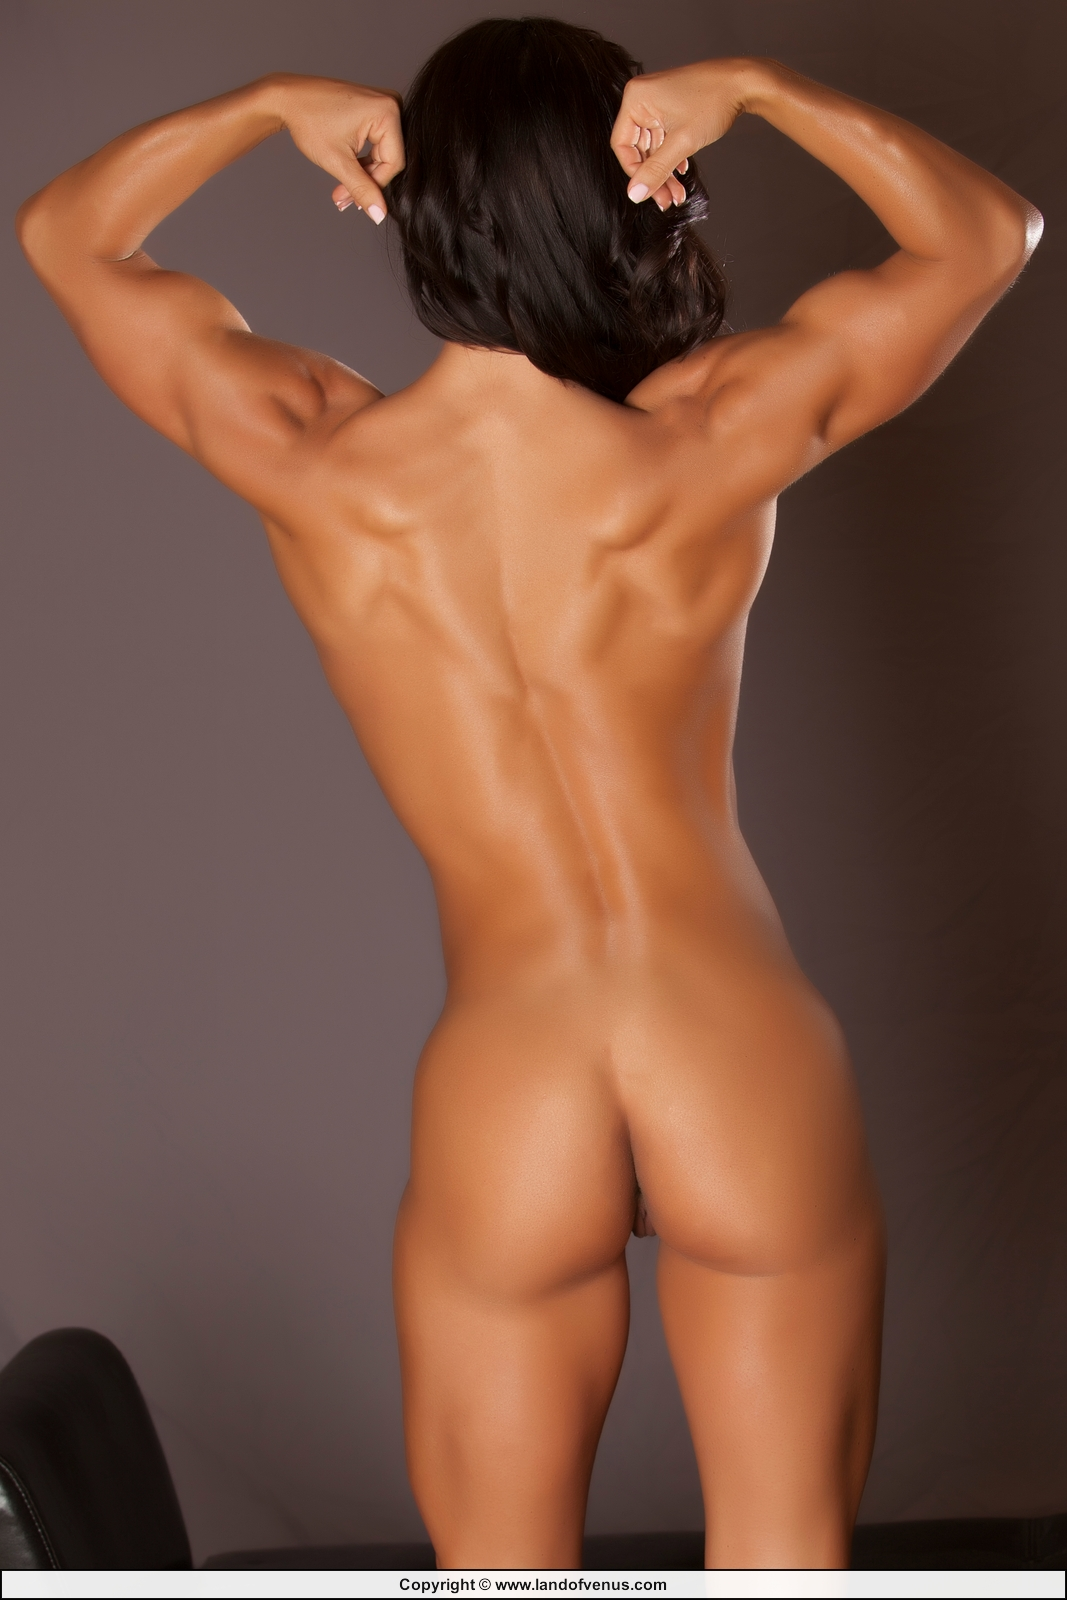 Nudes fitness Fit Young